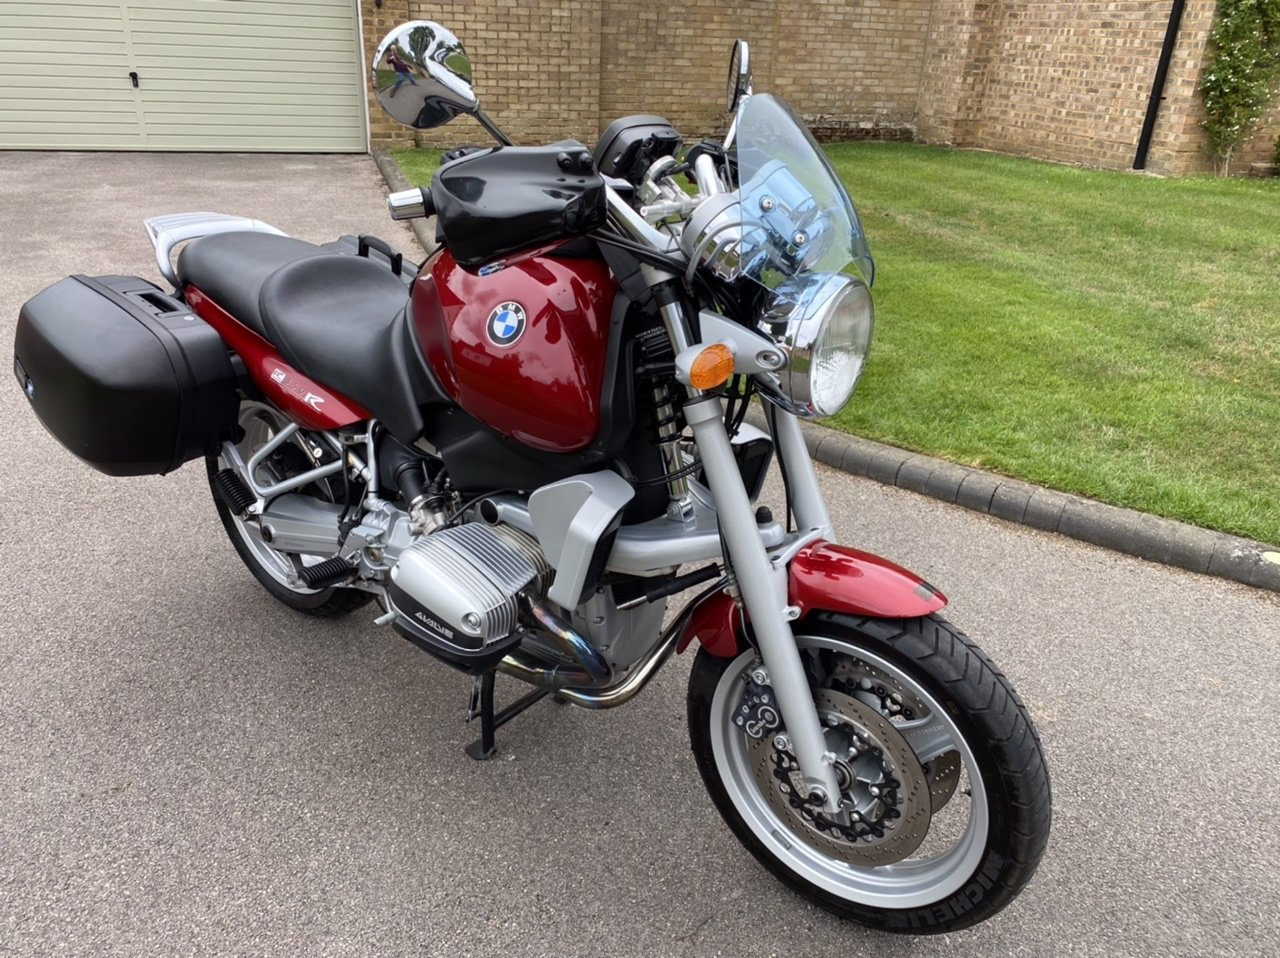 1998 BMW R850R Low mileage, Immaculate with luggage SOLD (picture 6 of 6)